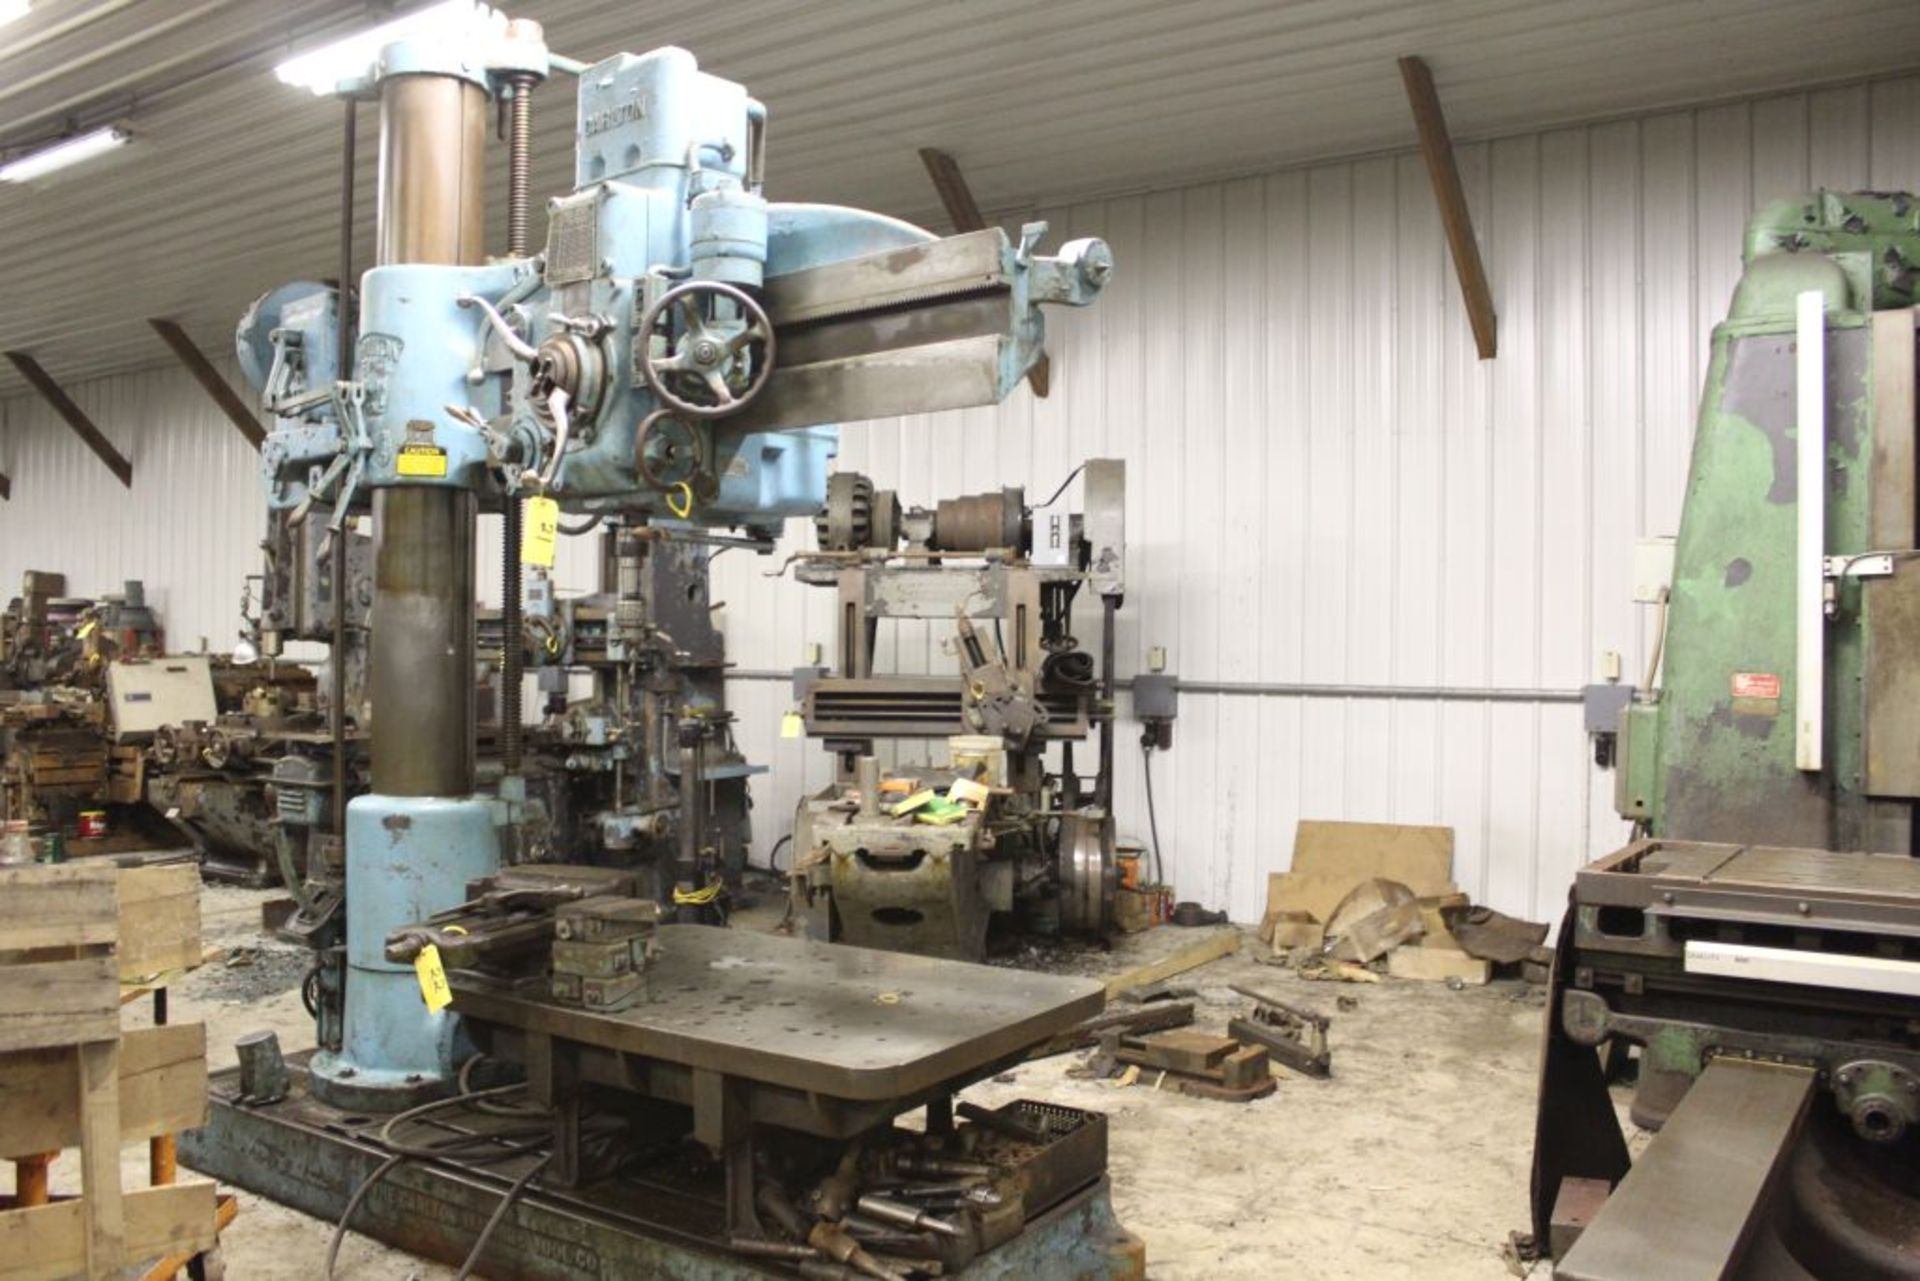 """Carlton radial arm drill, 5' arm, 11"""" column, 9' 9"""" total height, 36"""" x 53"""" bed, misc. tooling."""